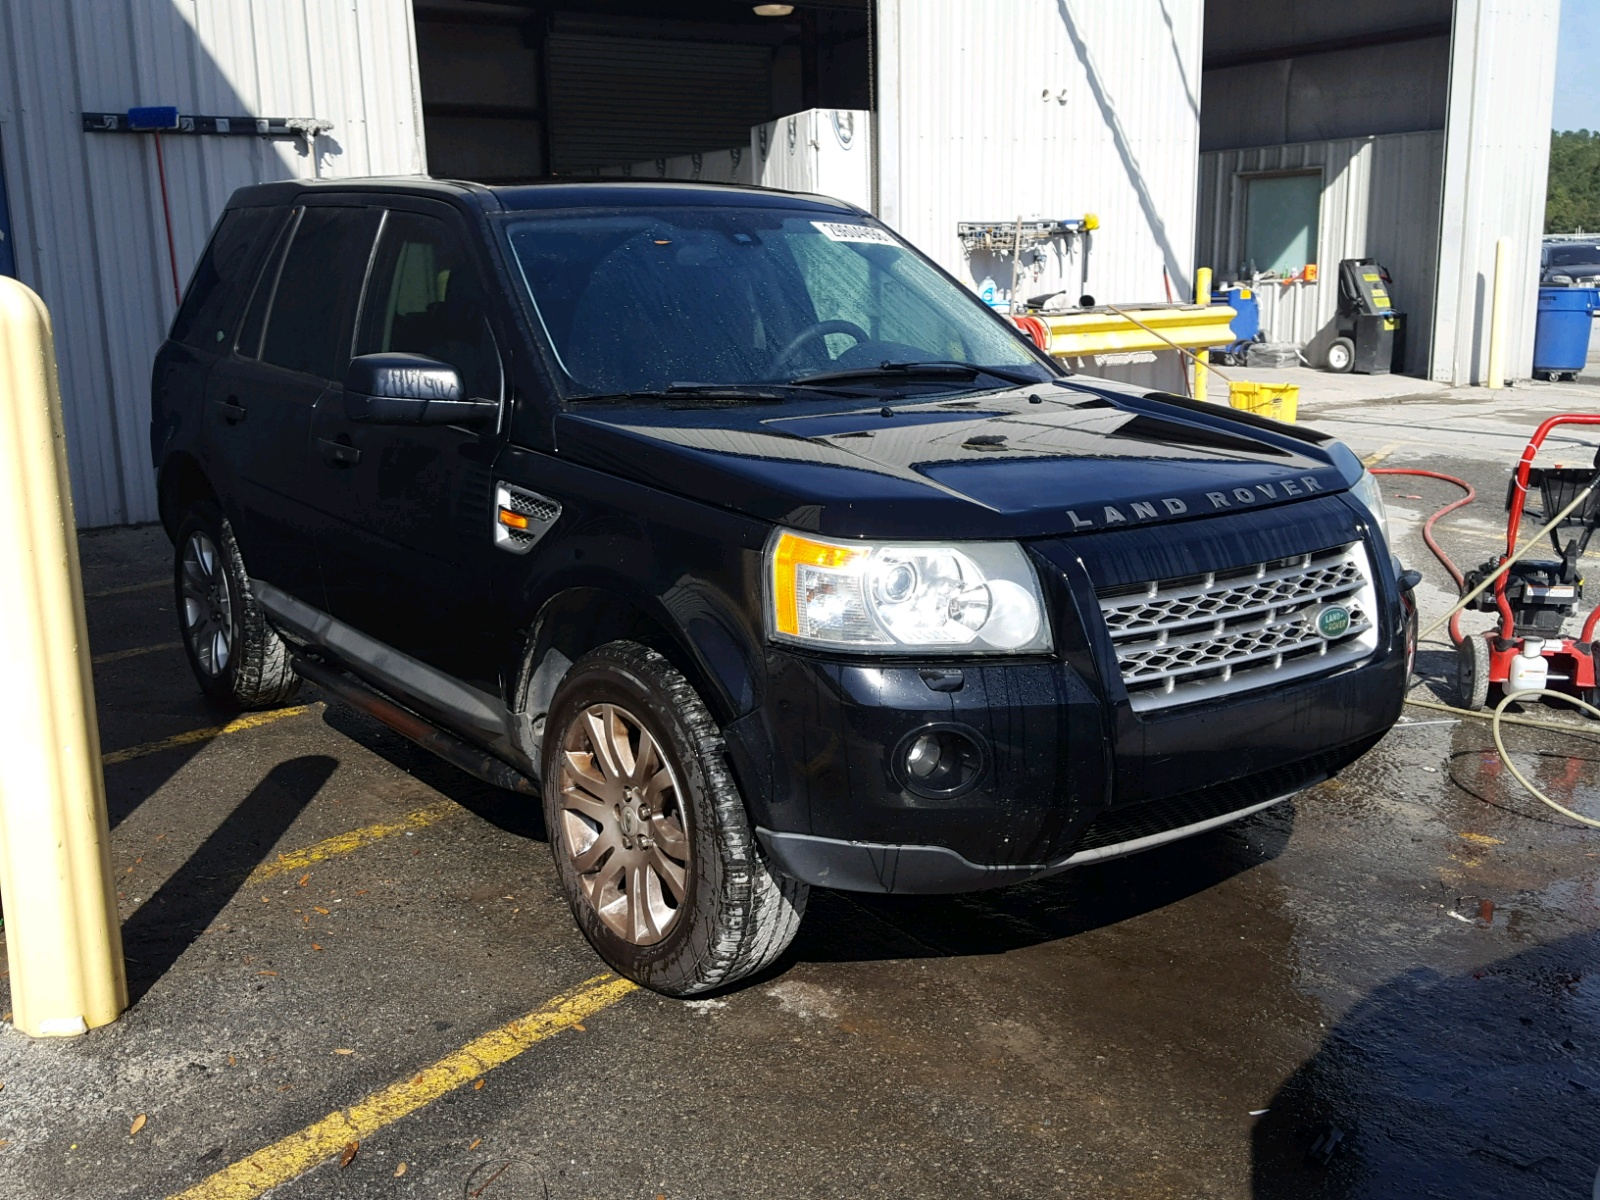 tec philadelphia black en copart auctions right view sale landrover on se for in land rover pa certificate of lot online carfinder auto salvage